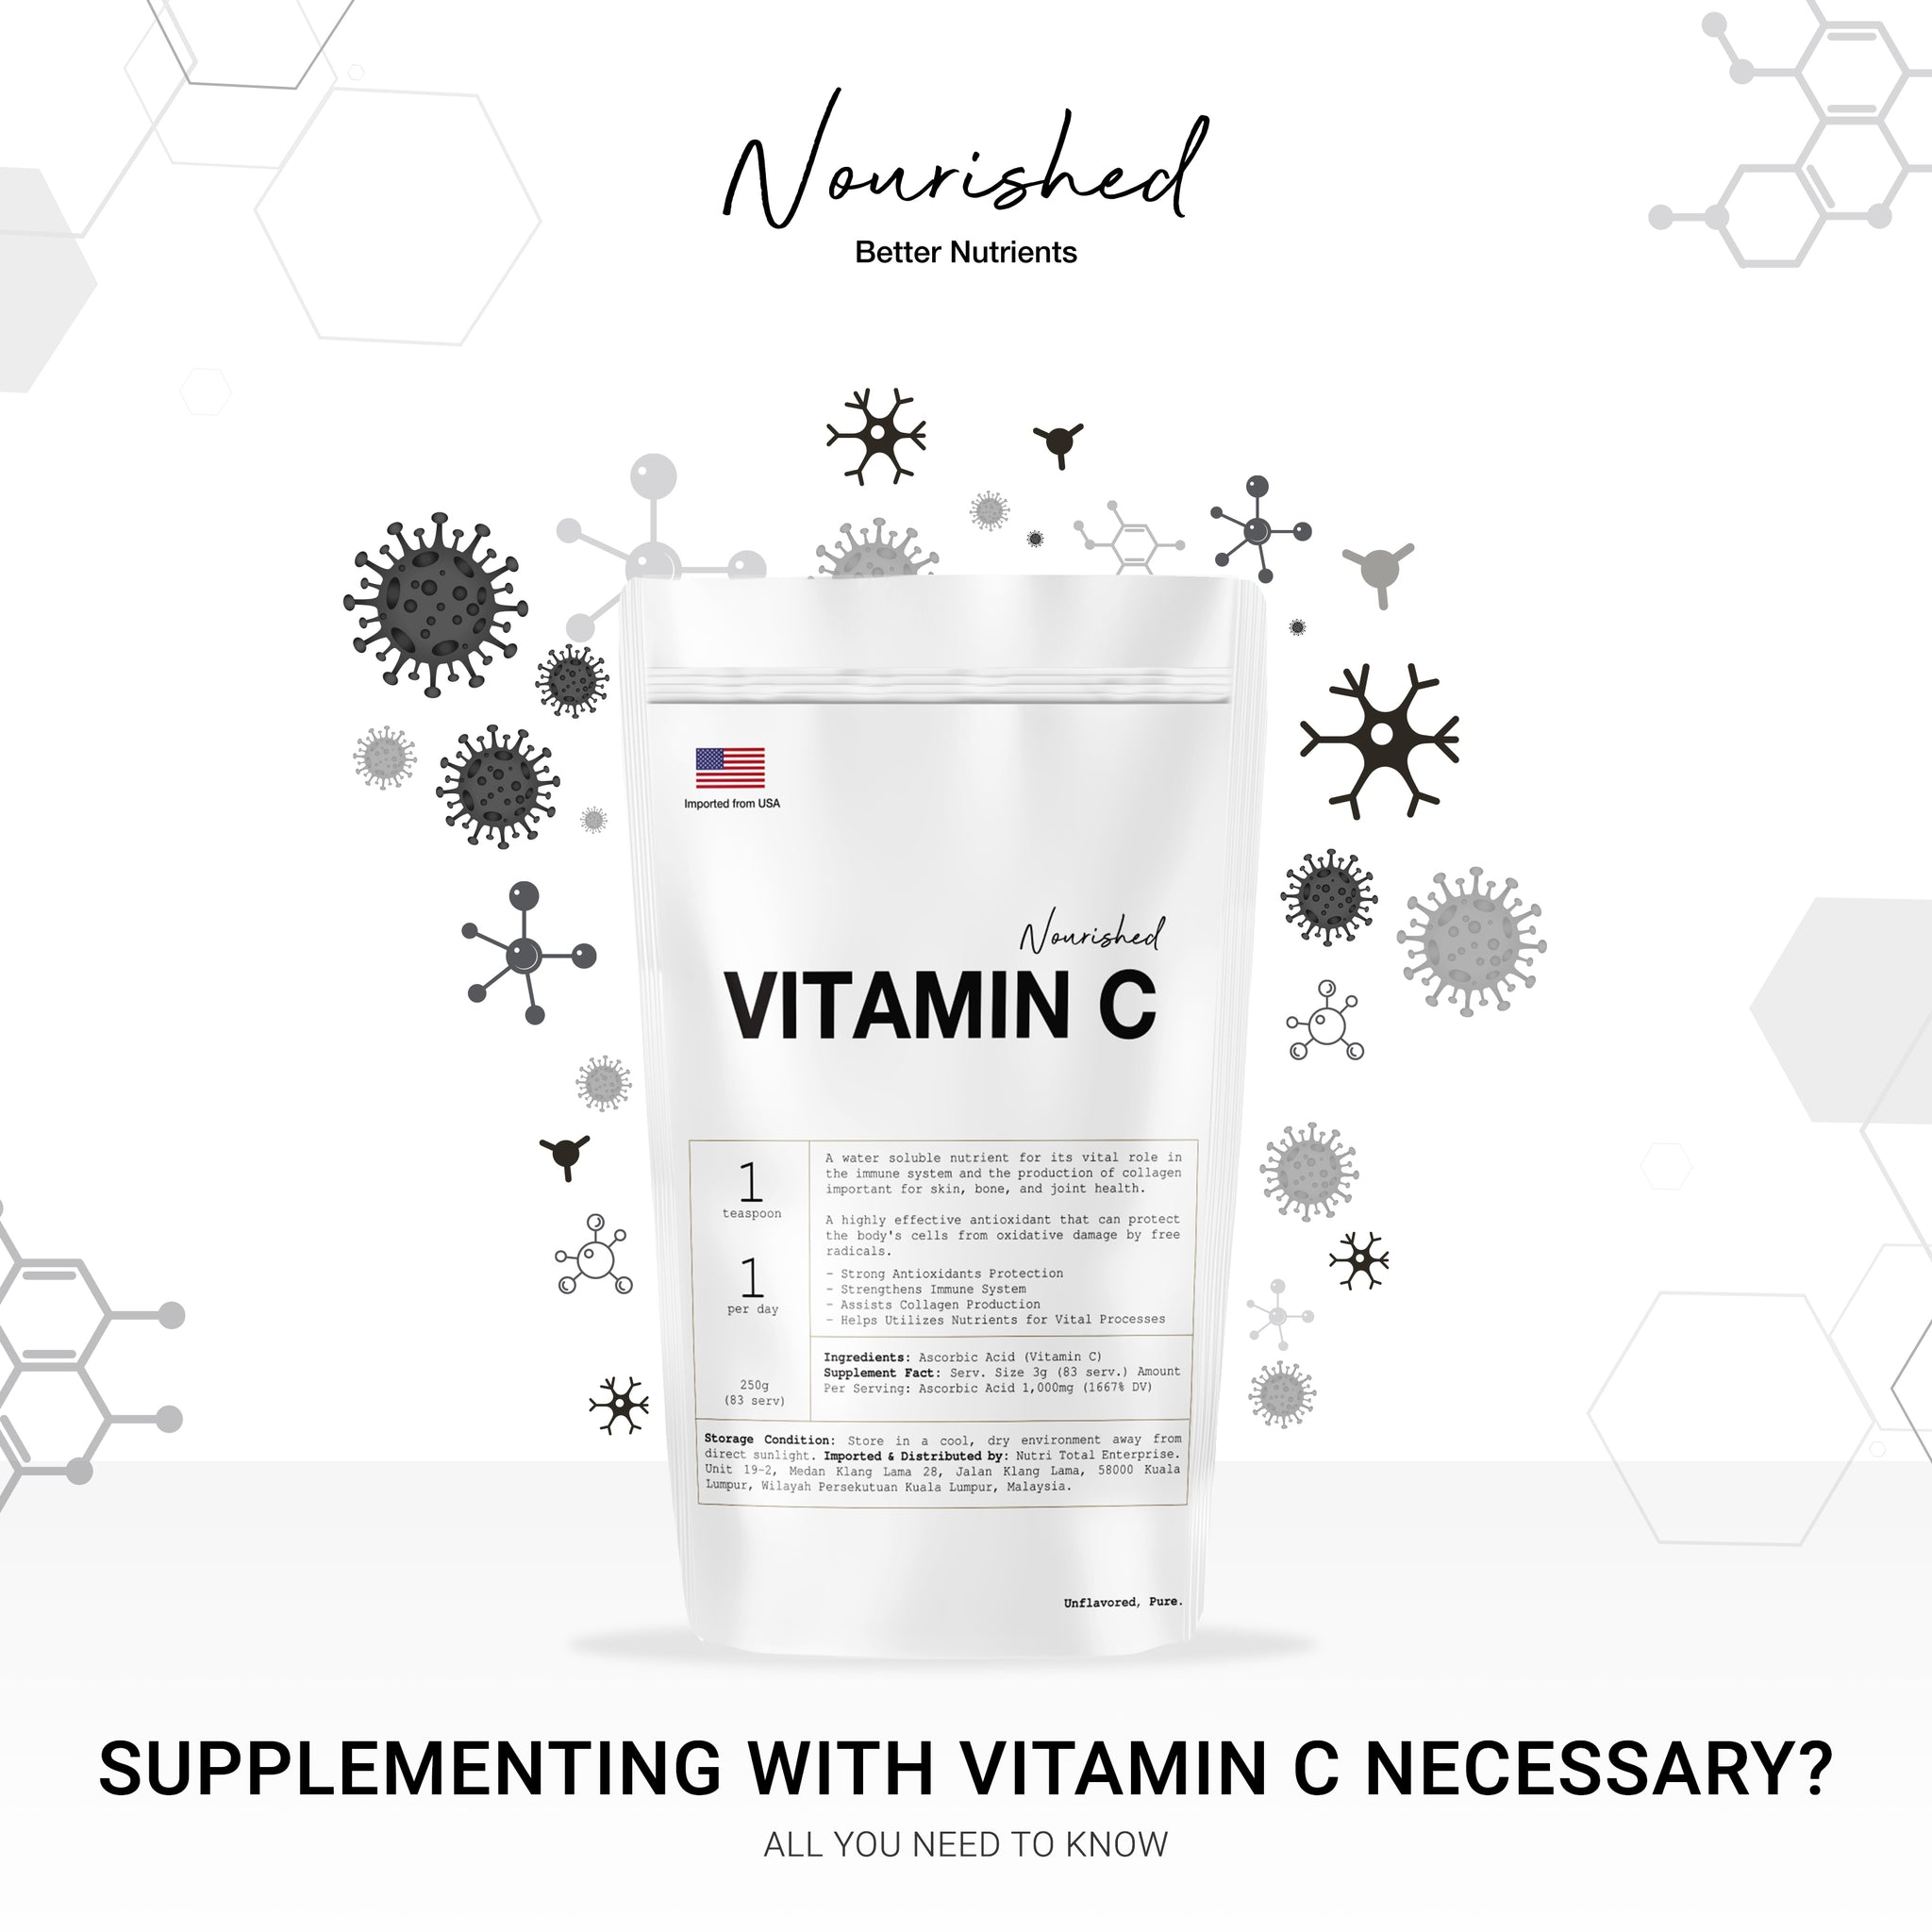 Is Supplementing with Vitamin C Necessary? All You Need to Know.